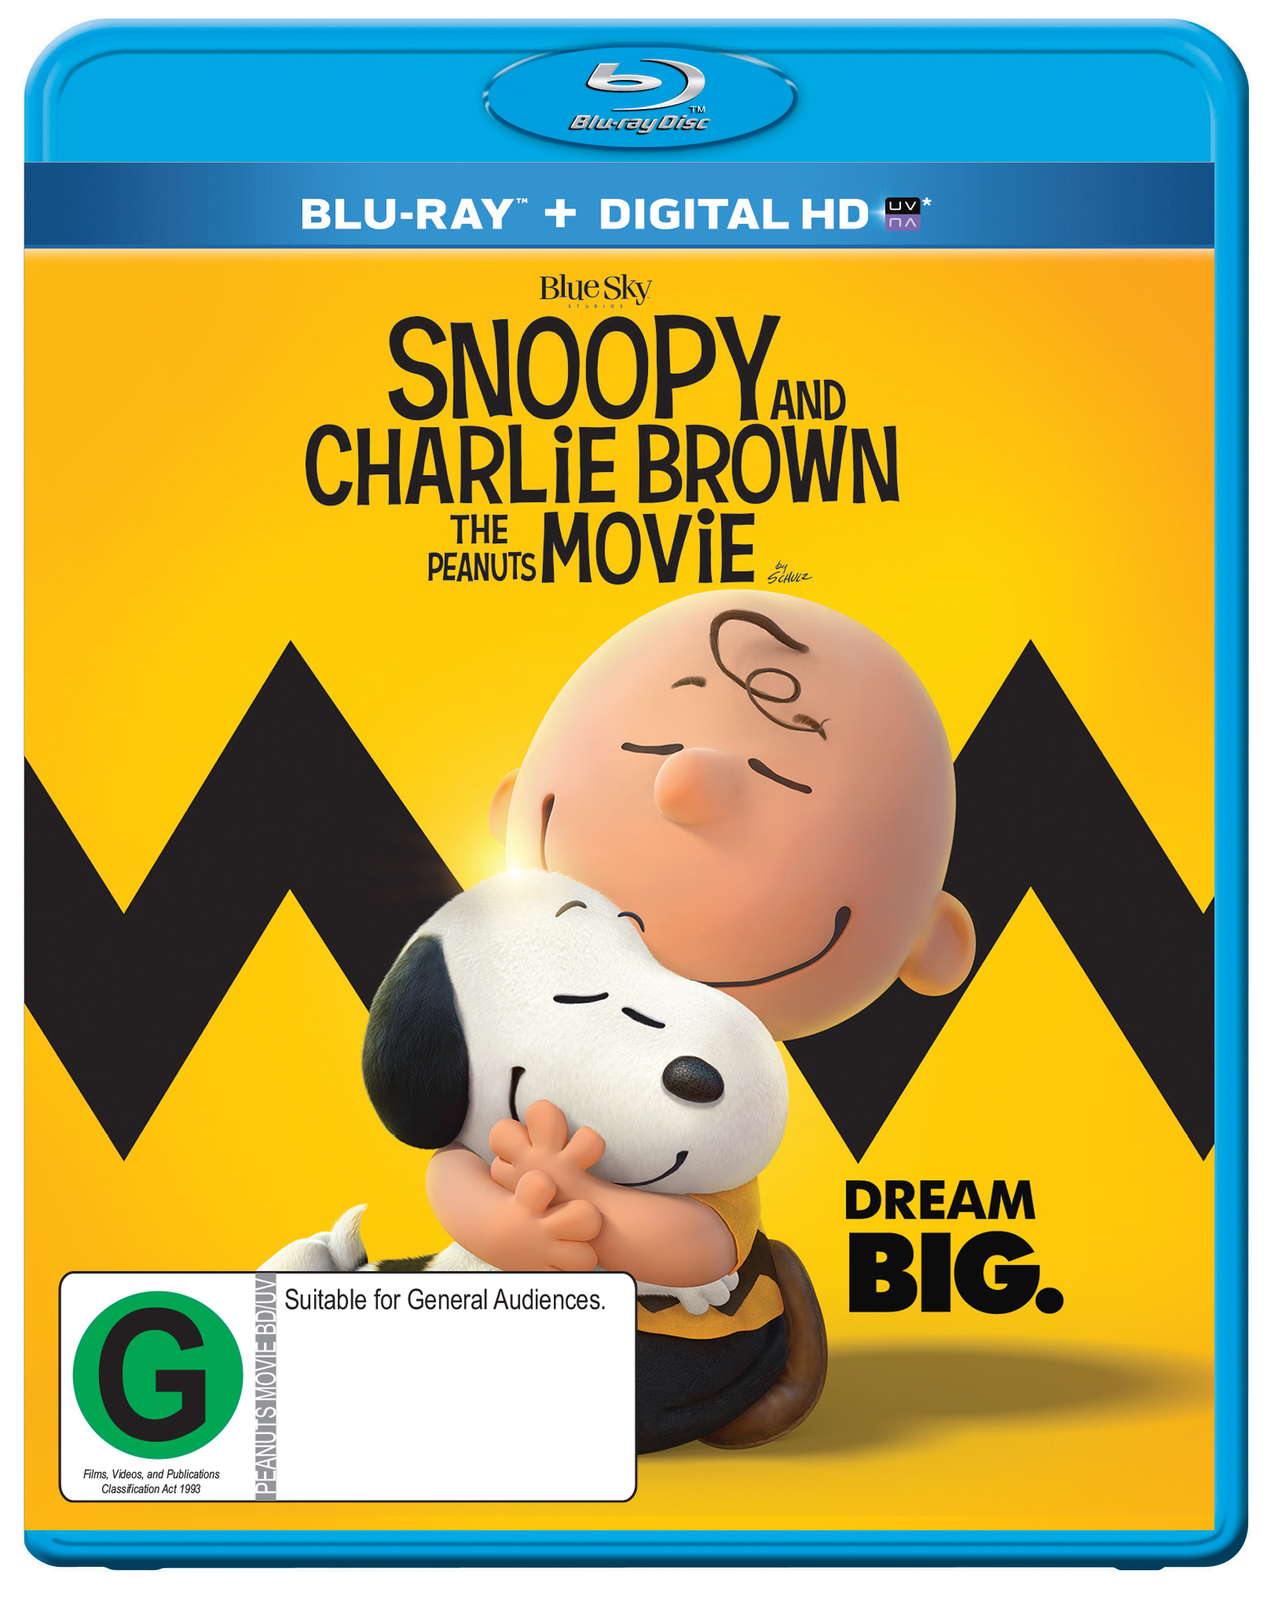 Snoopy And Charlie Brown The Peanuts Movie on Blu-ray image